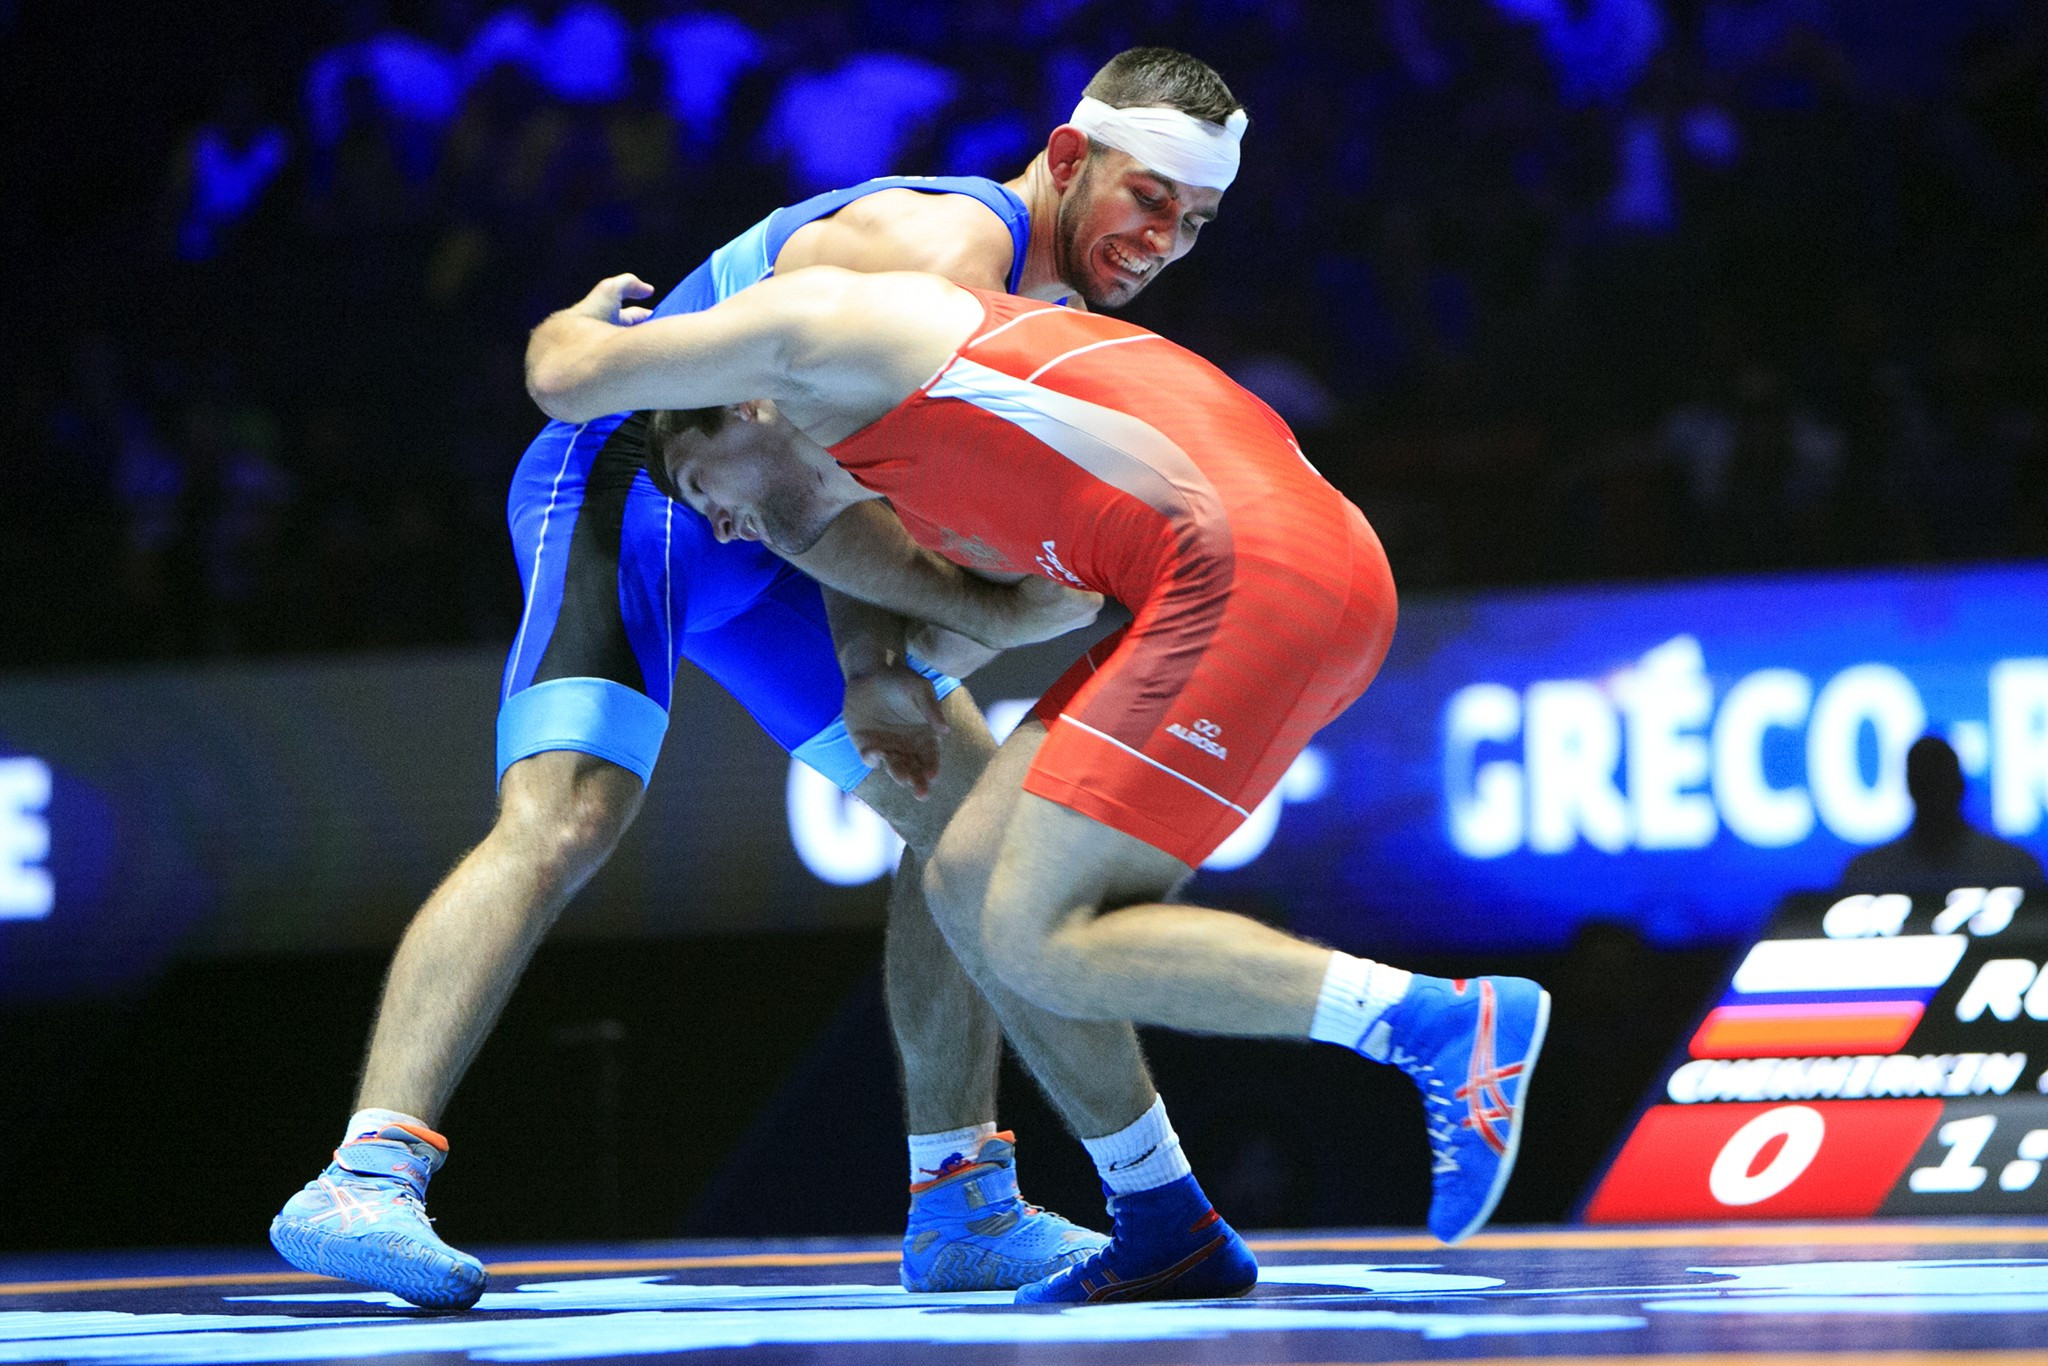 Serbian Viktor Nemes became the second athlete from his country to win a world wrestling title as he claimed gold in the 75kg event ©UWW